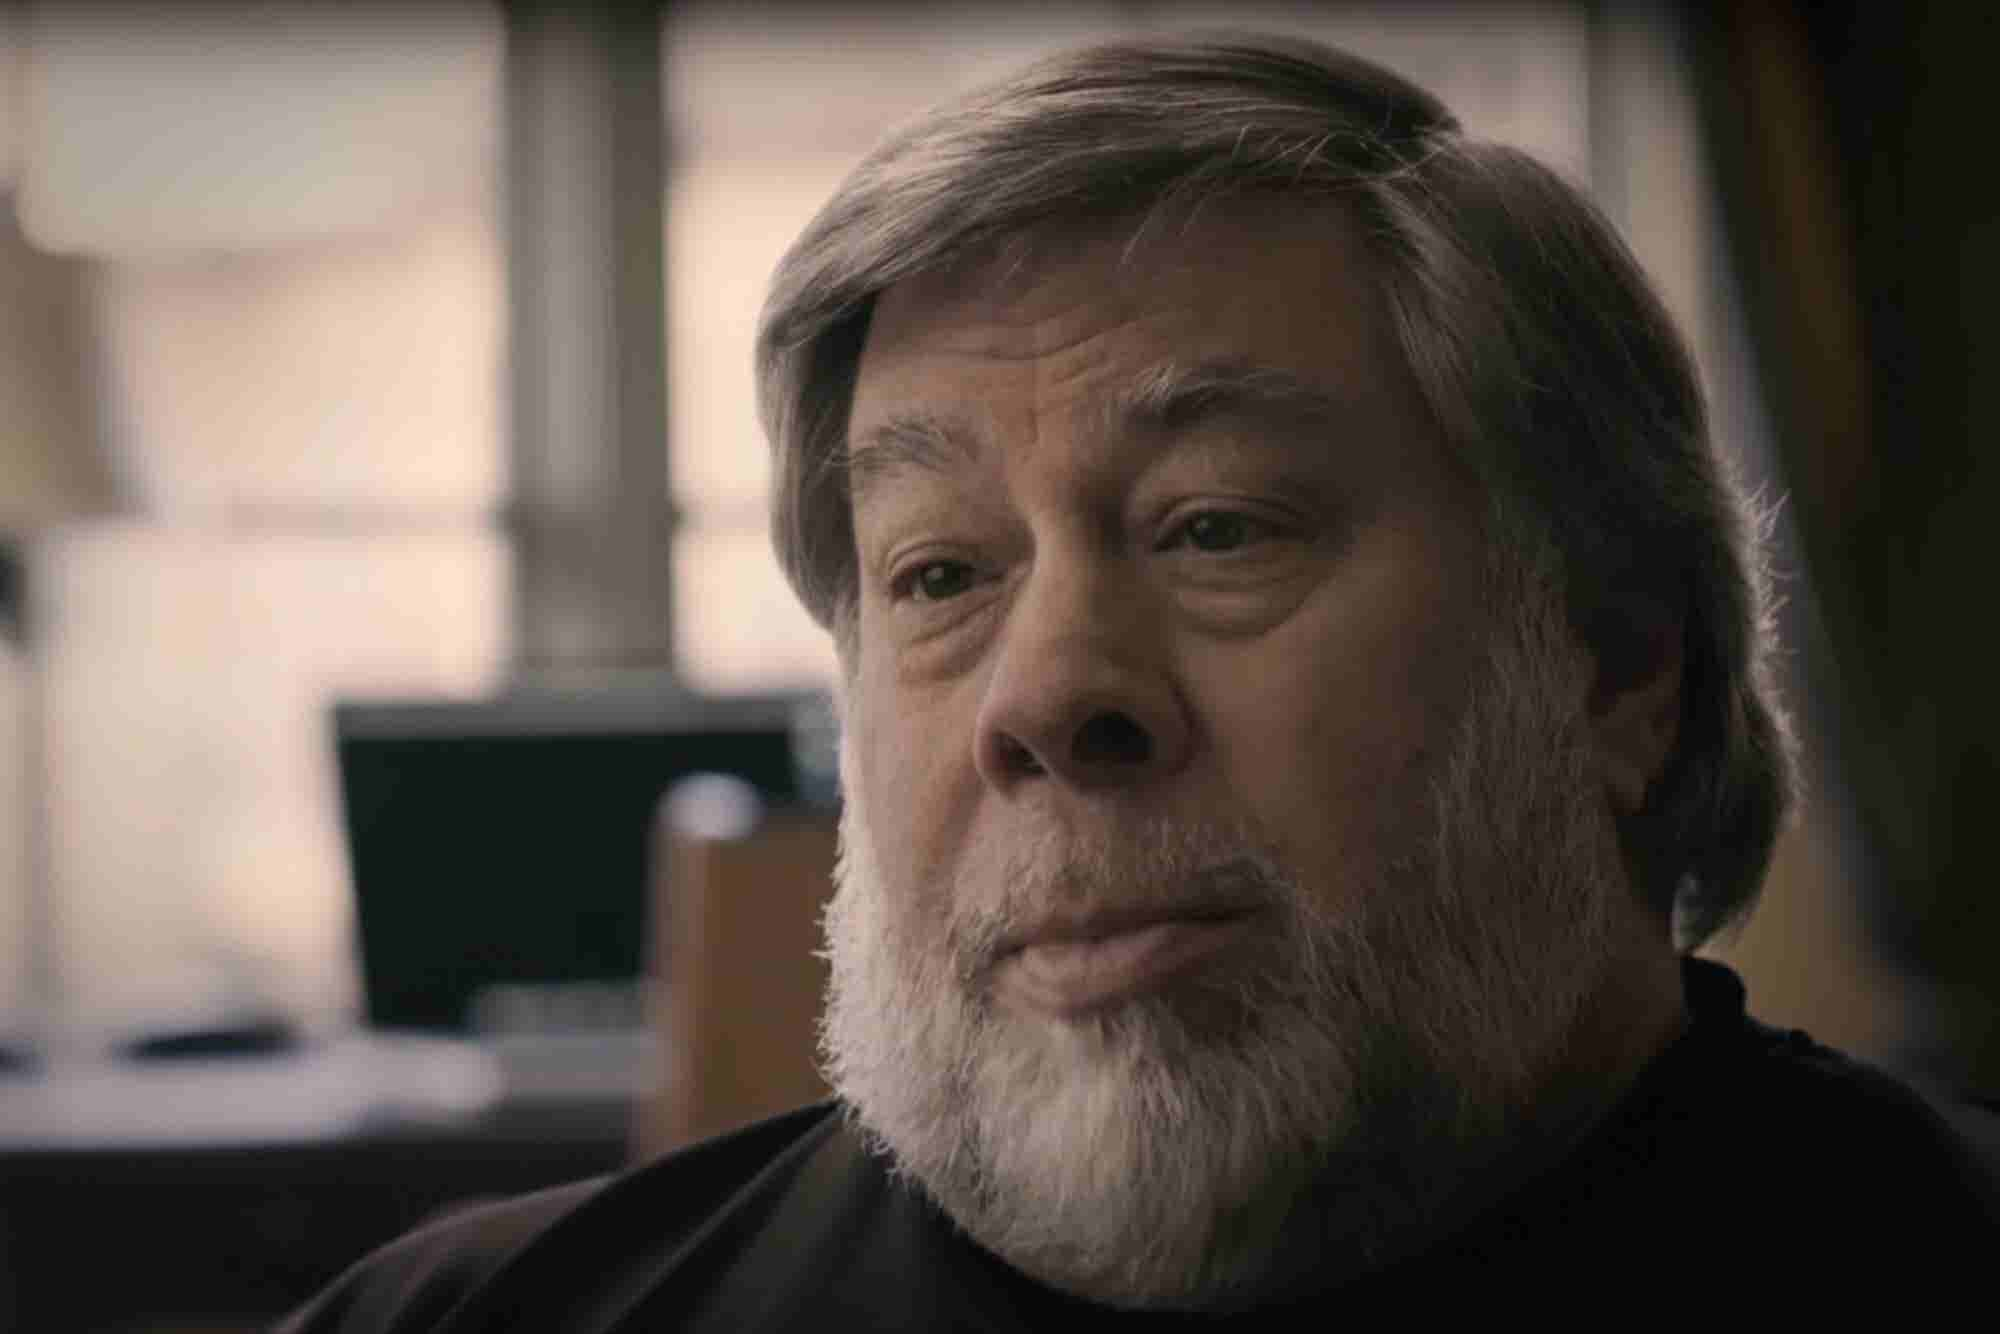 Apple Co-Founder Steve Wozniak Sweetly Describes How He Fell in Love With Tech in Fun Reddit Video